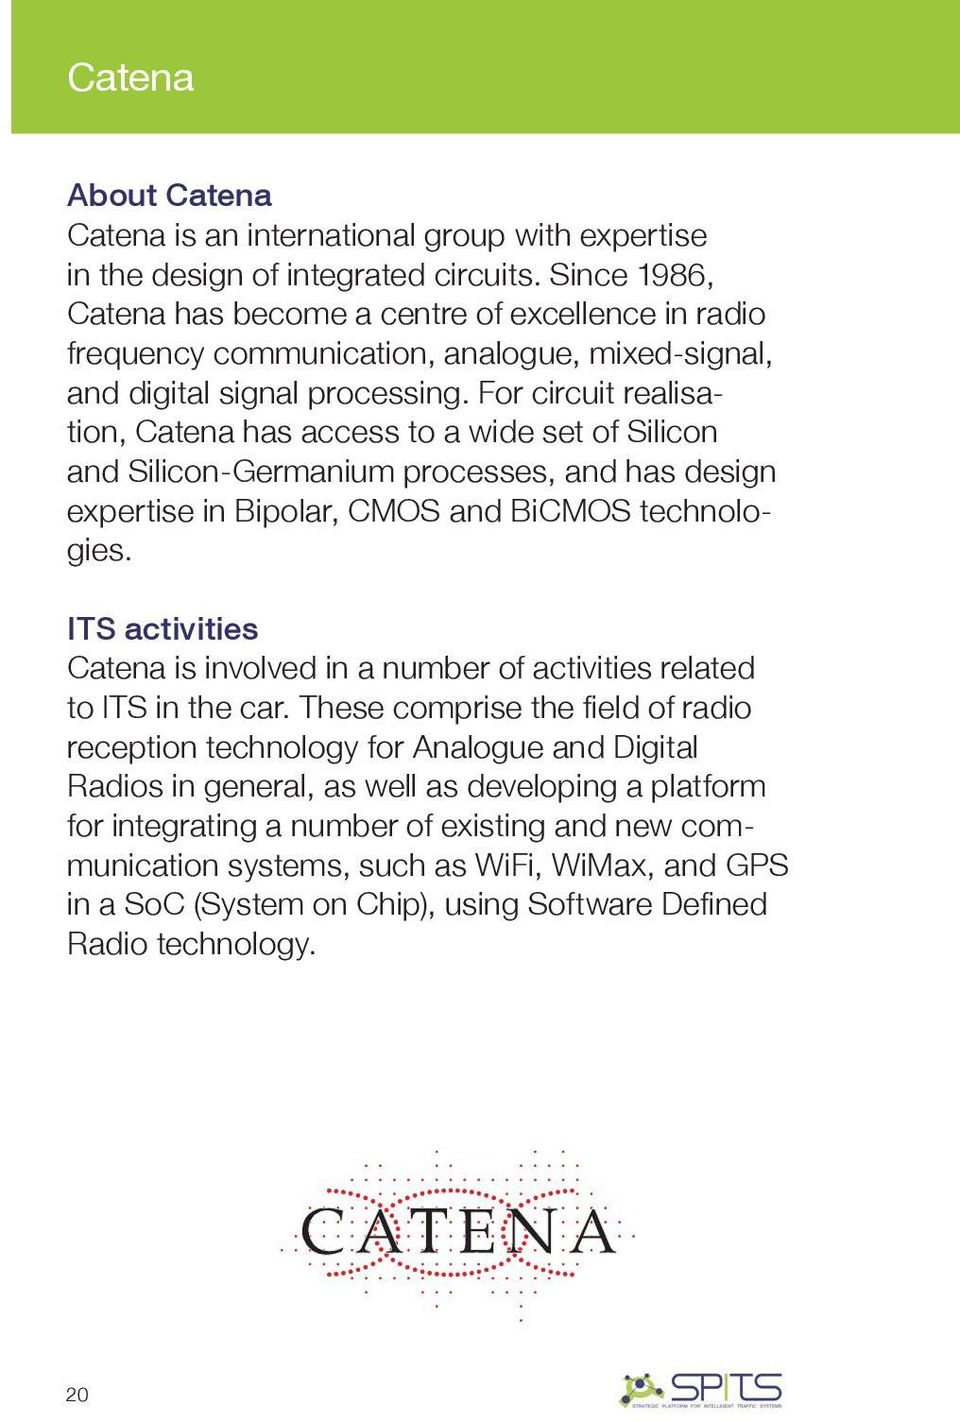 For circuit realisation, Catena has access to a wide set of Silicon and Silicon-Germanium processes, and has design expertise in Bipolar, CMOS and BiCMOS technologies.